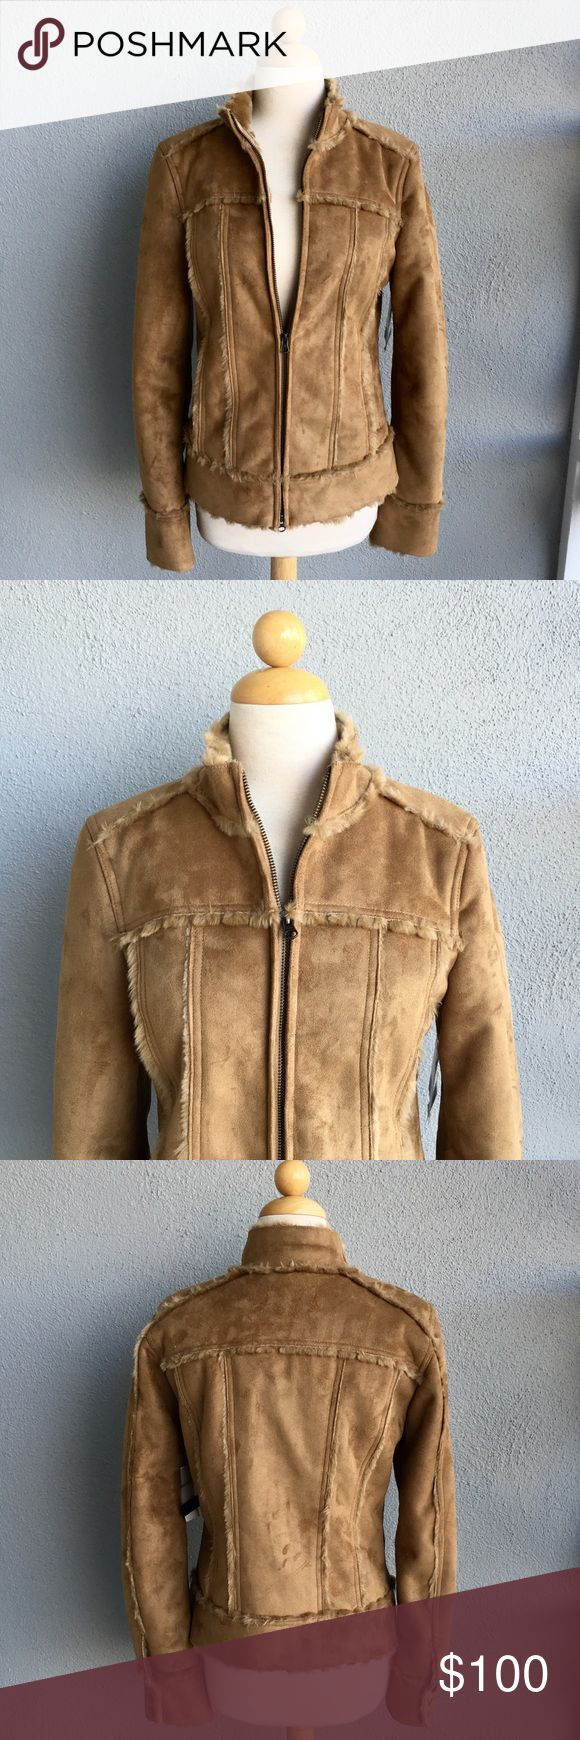 Calvin Klein Vegan Leather Faux Fur Jacket Sz M Calvin